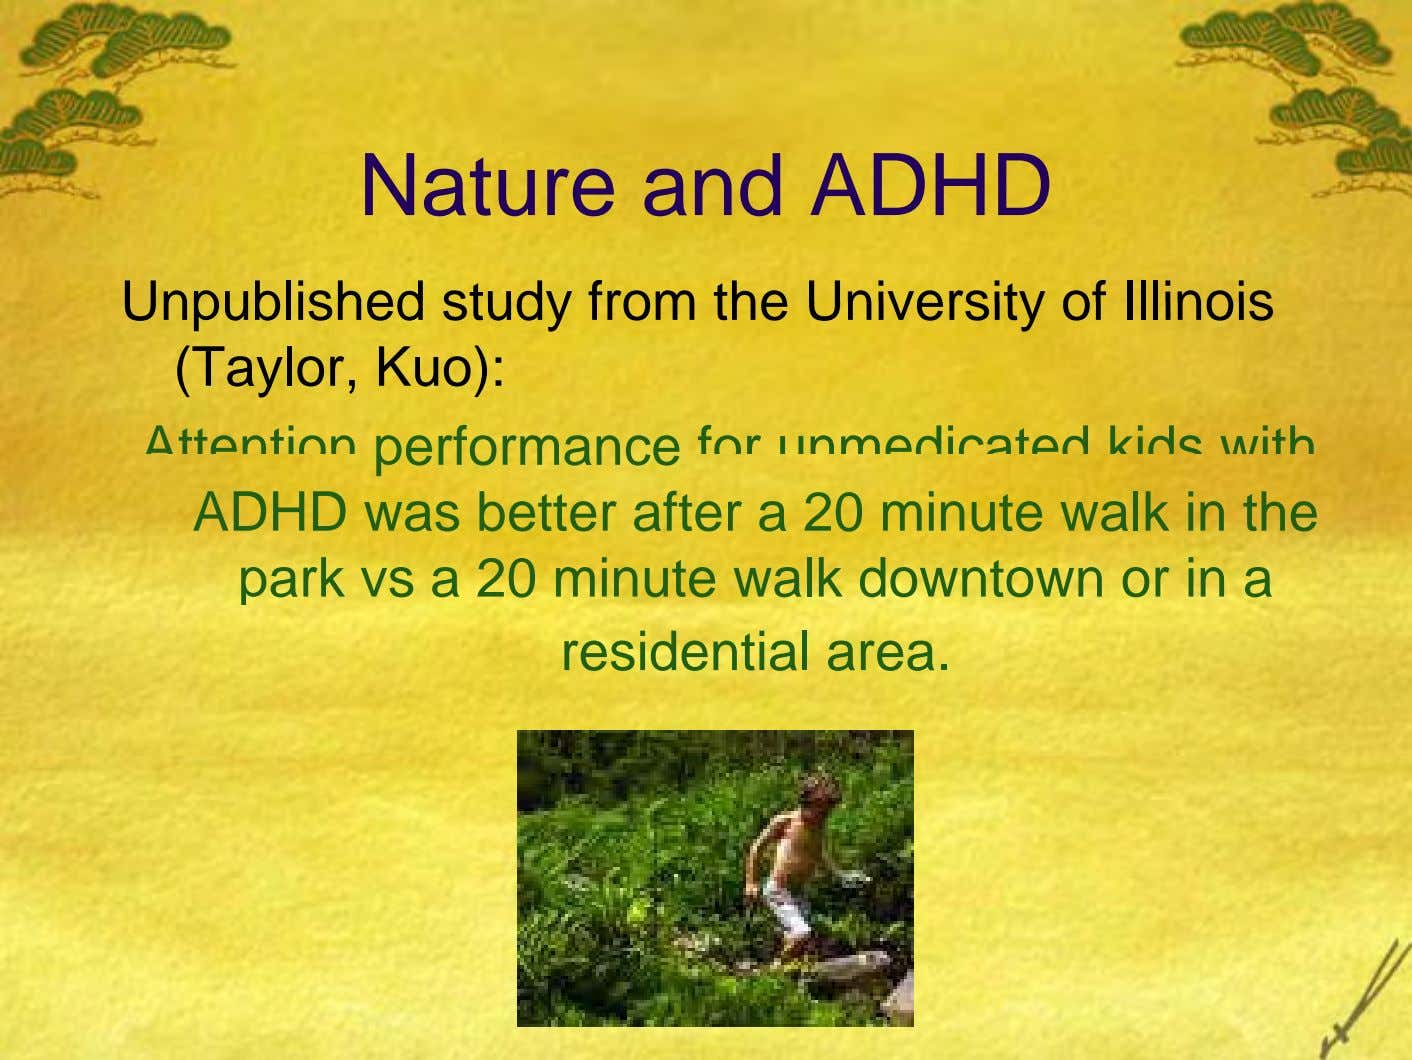 Nature and ADHD Unpublished study from the University of Illinois (Taylor, Kuo): Attention performance for unmedicated